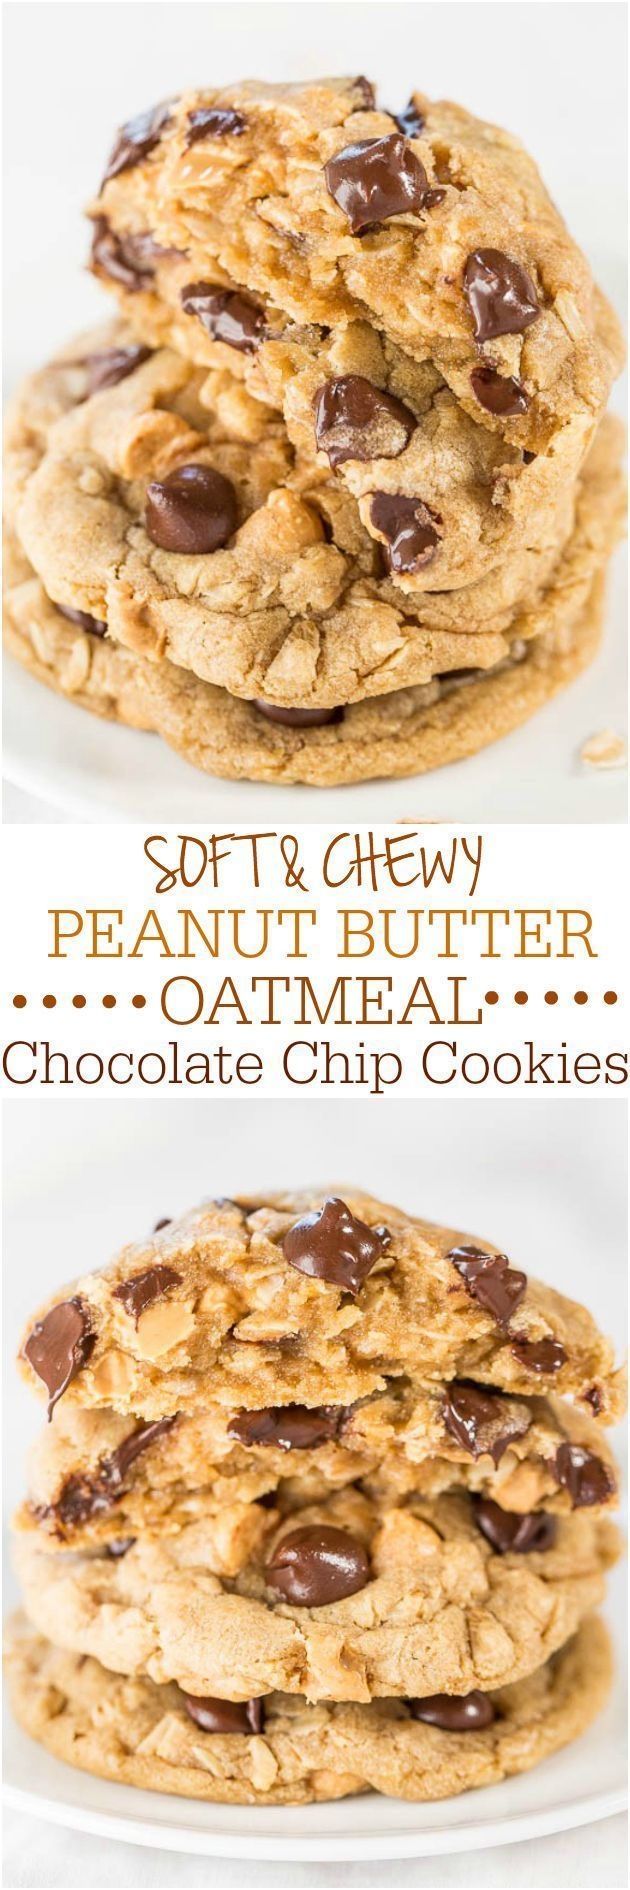 (5) Chewy oatmeal peanut butter chocolate chip cookies | Recipe